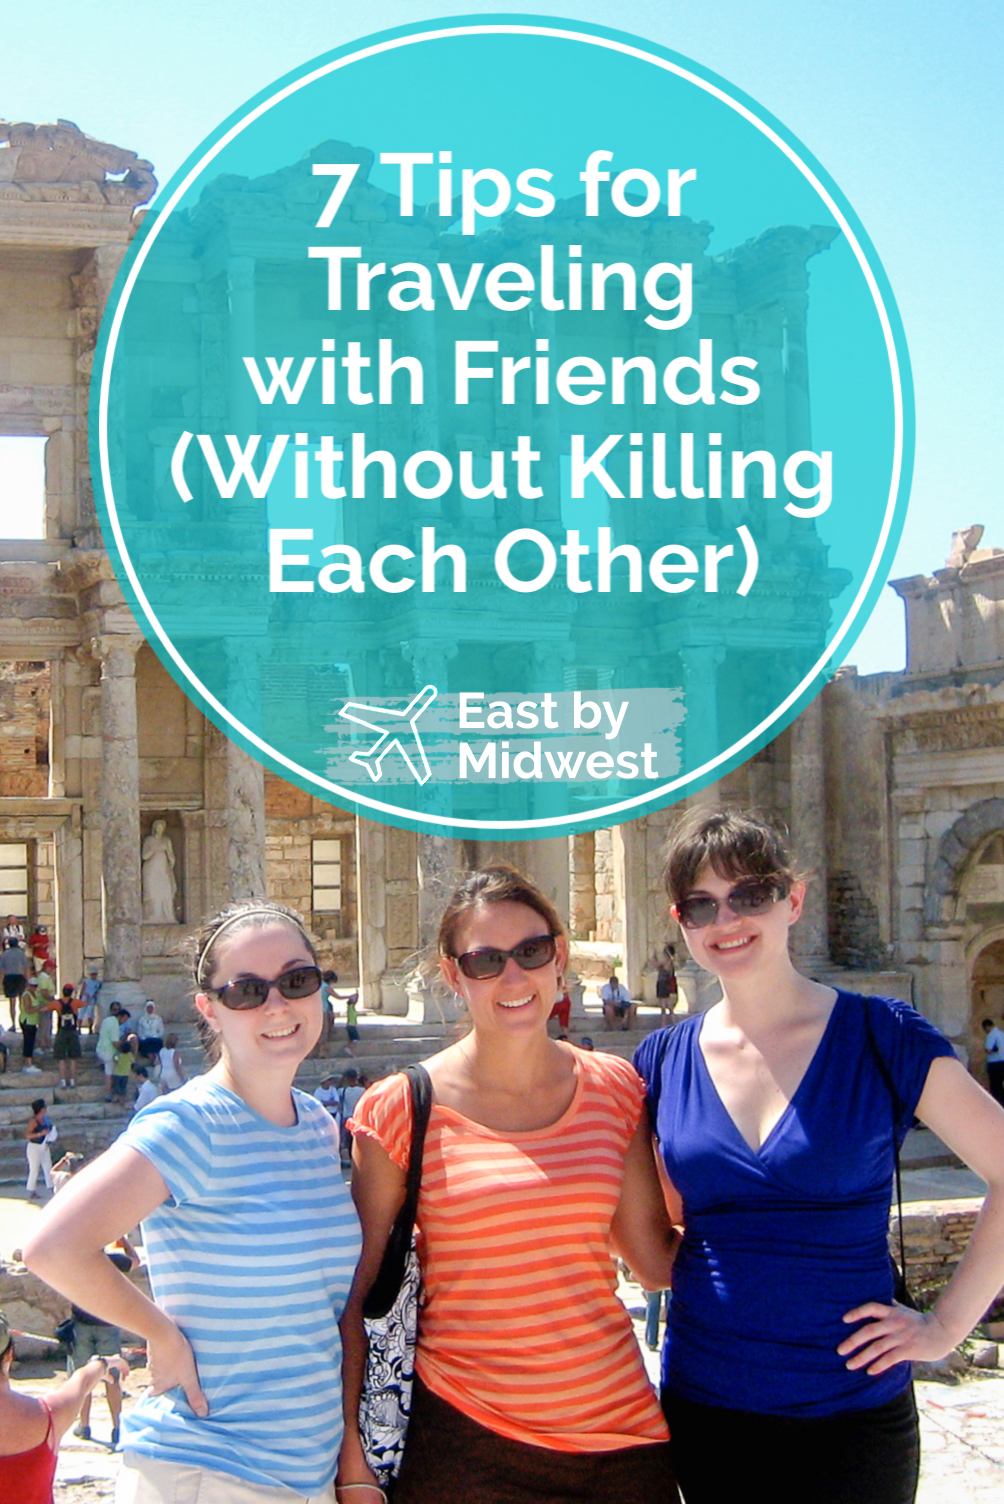 7 Tips for Traveling with Friends (Without Killing Each Other)